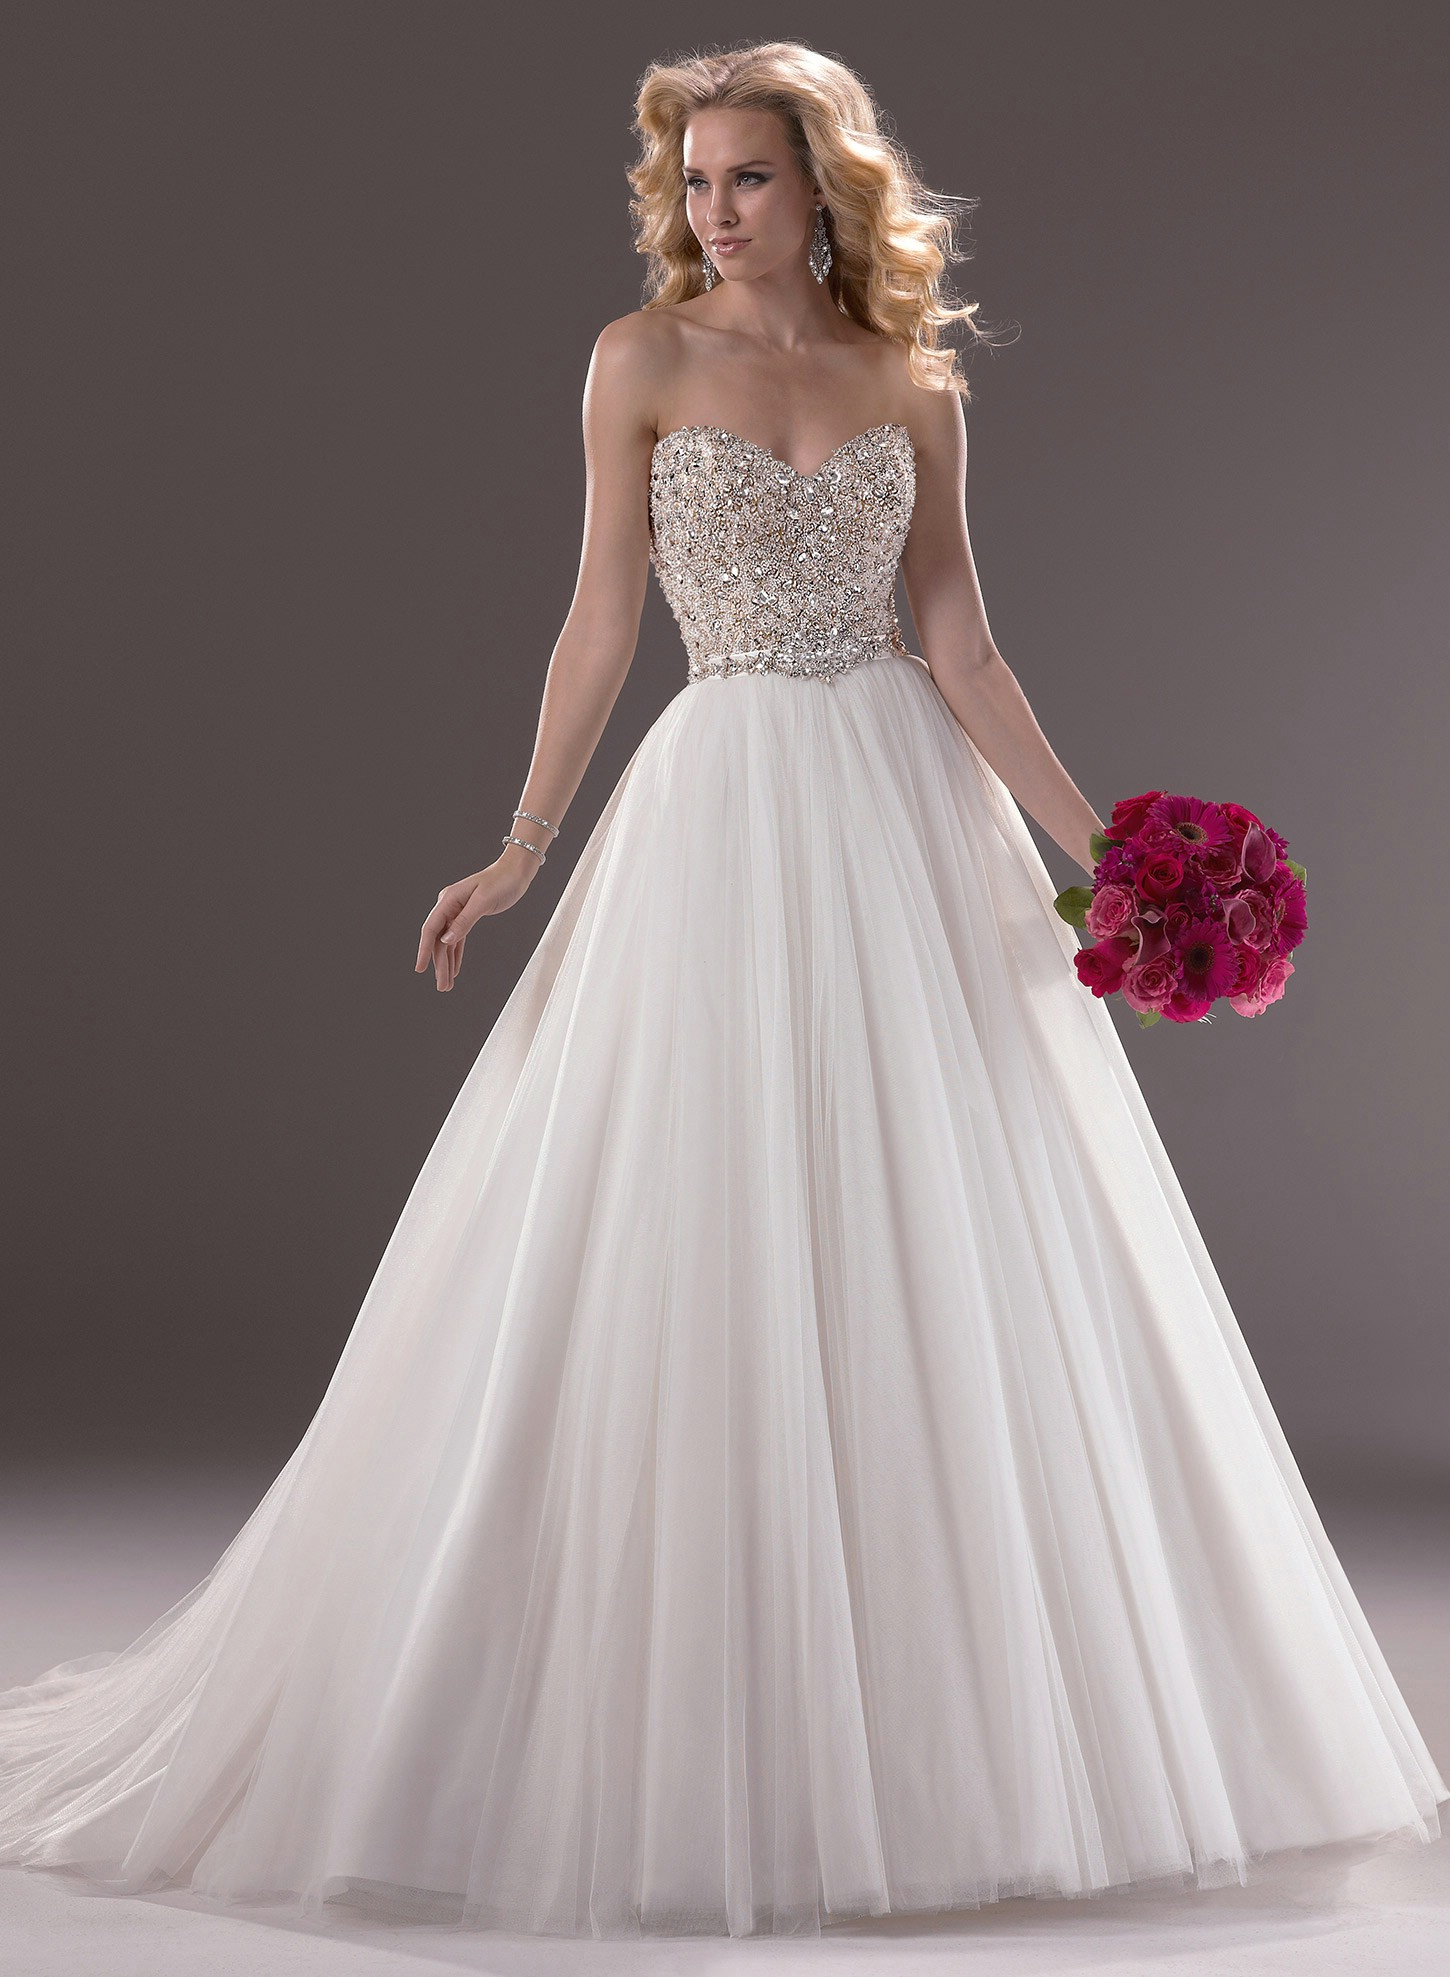 Maggie Sottero Wedding Dresses [Esme] at BestBridalPrices.com on Wanelo